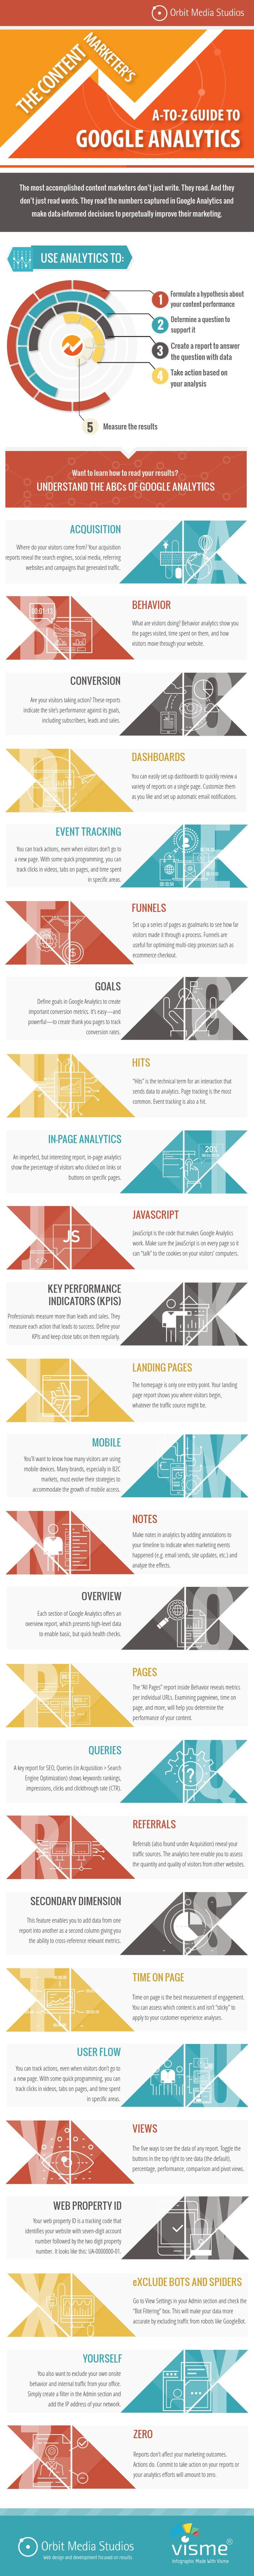 """KPIs und Analysen im Content Marketing: """"Google Analytics: The A-to-Z Guide for Content Marketers"""" [Infographic] 